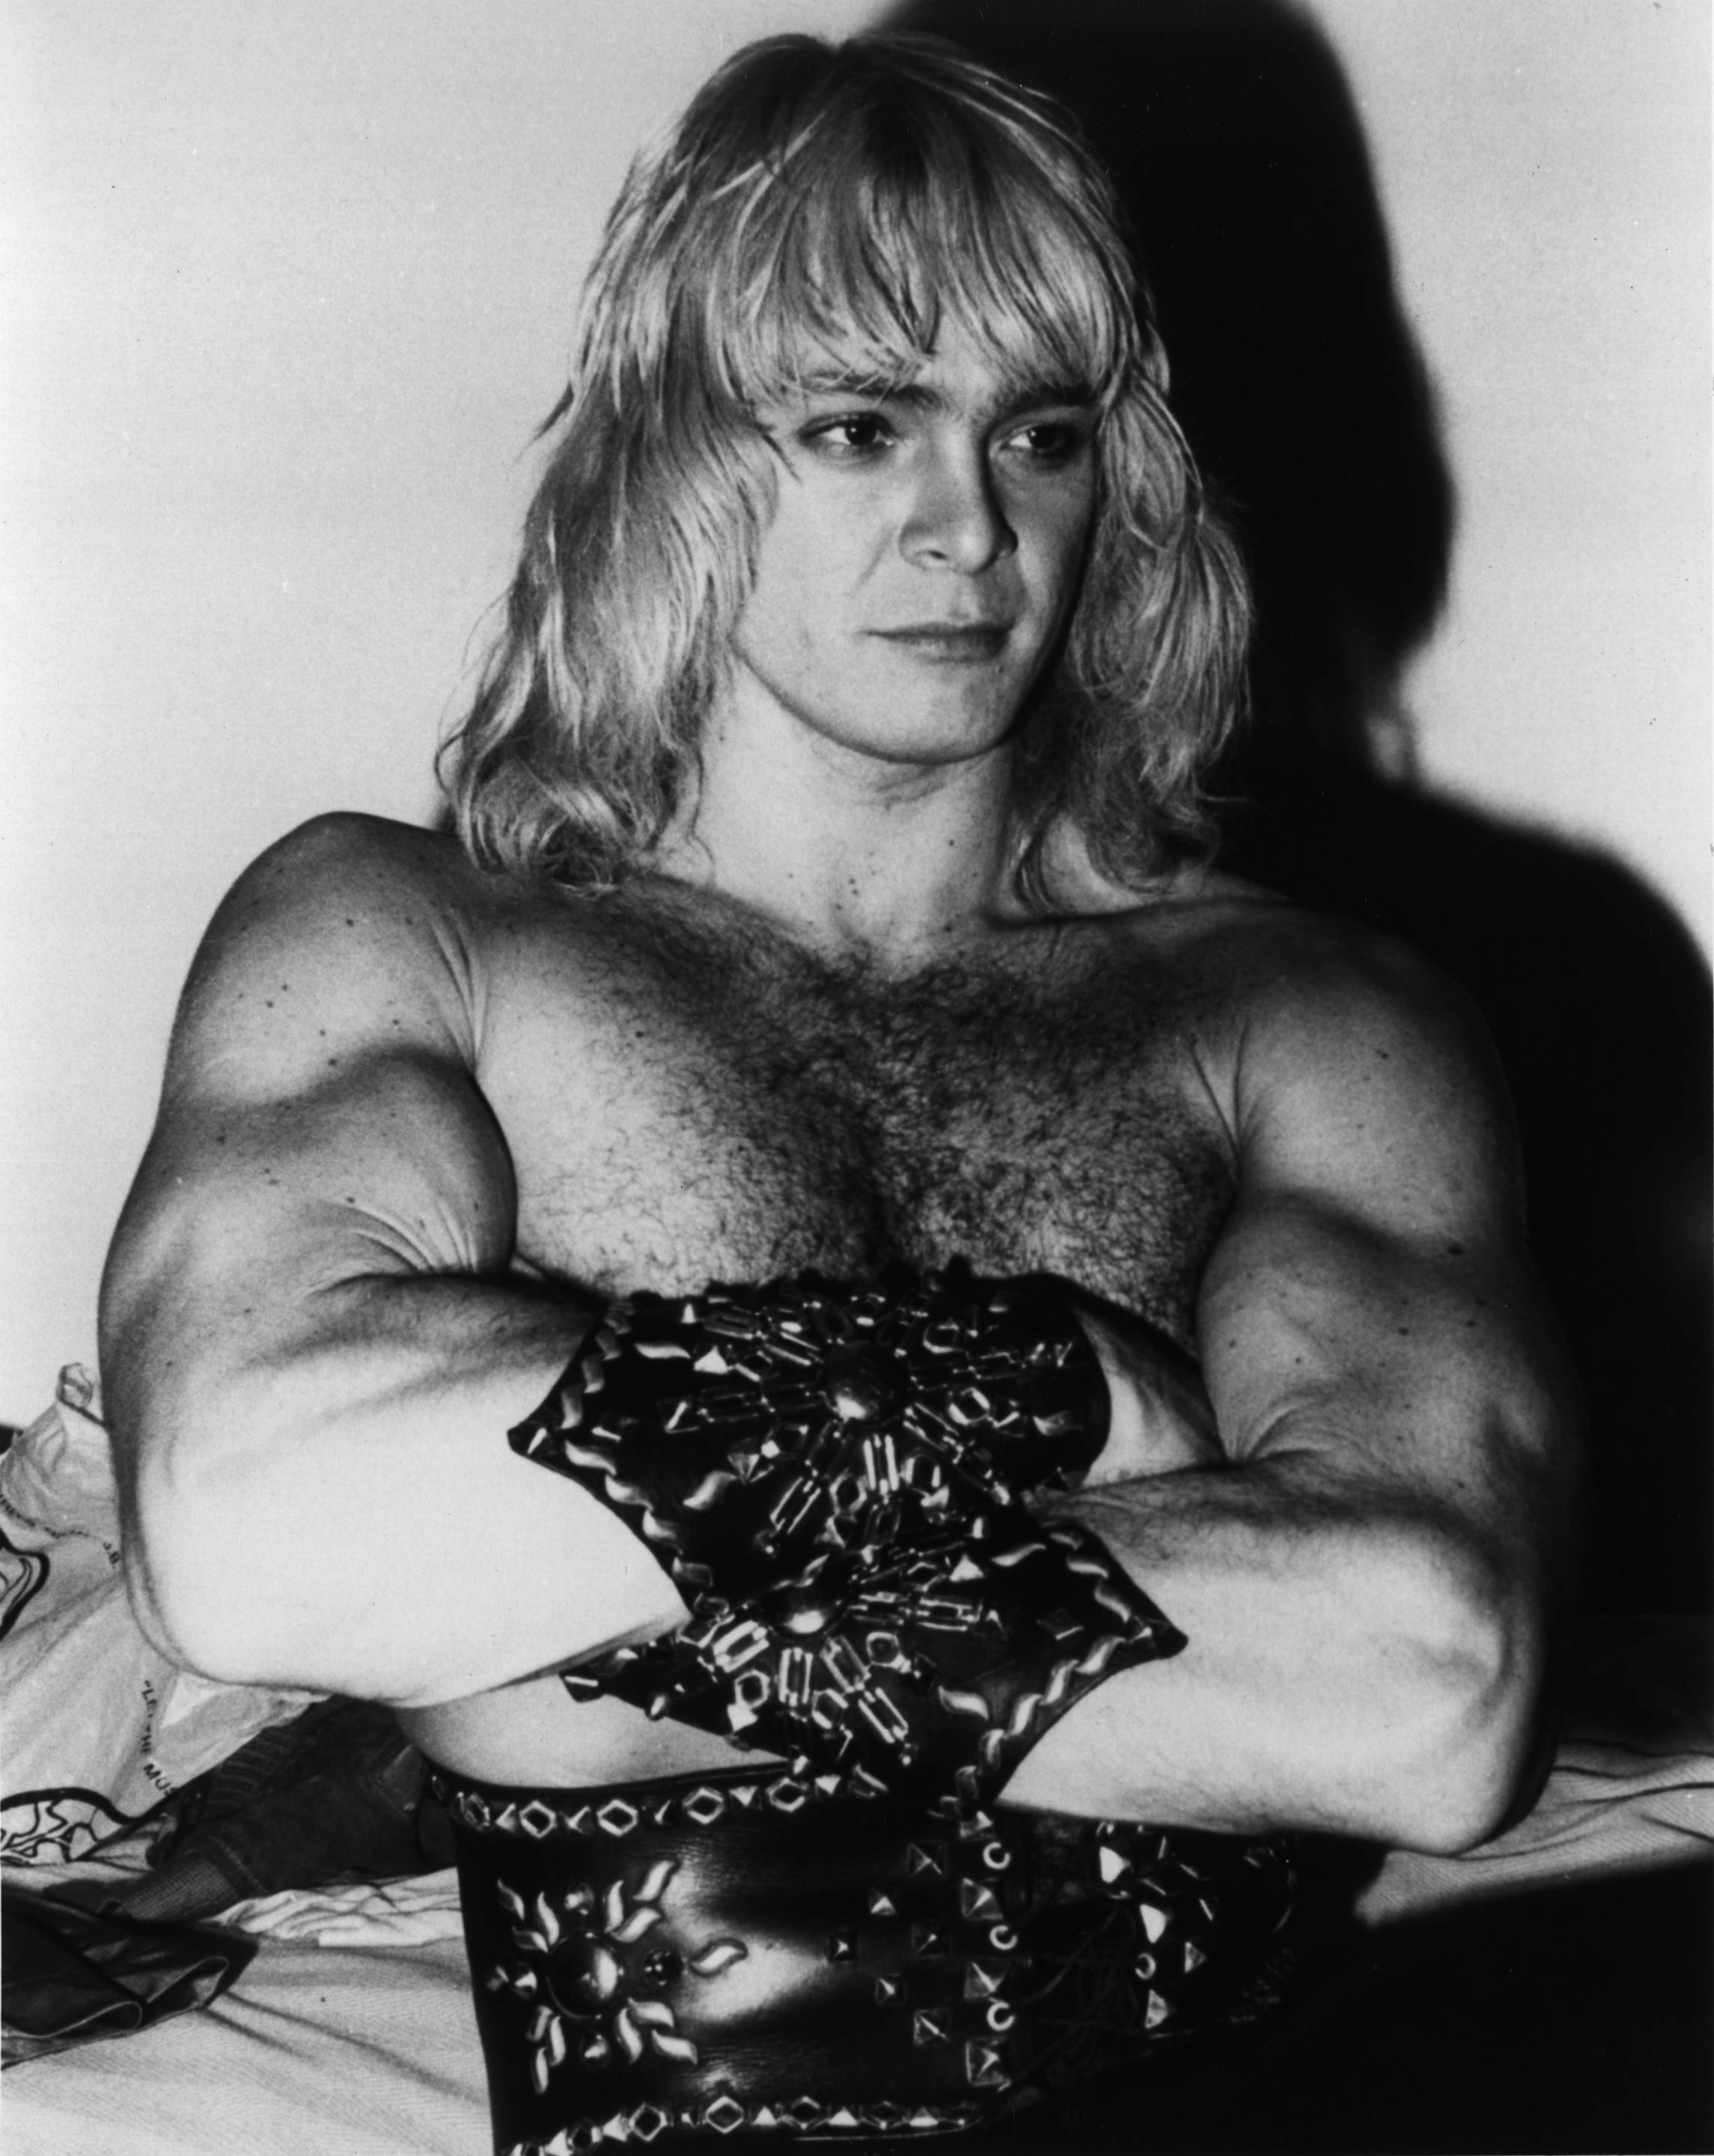 Jon Mikl Thor net worth